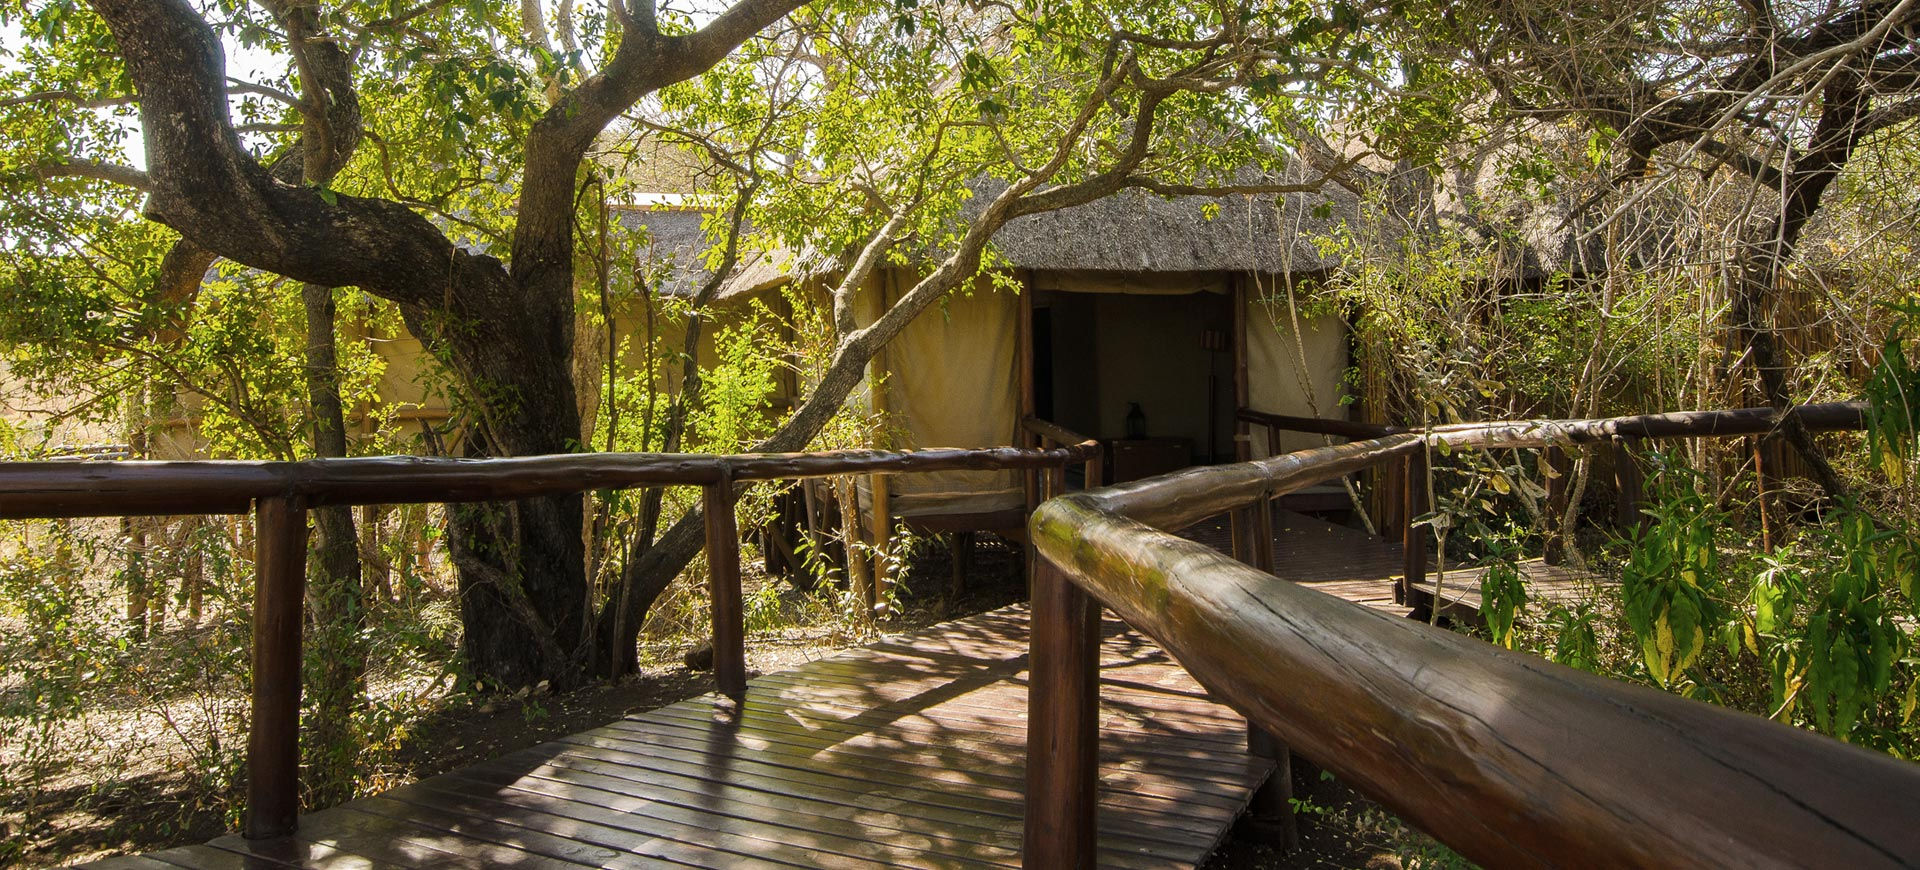 Camp Shonga Lodge